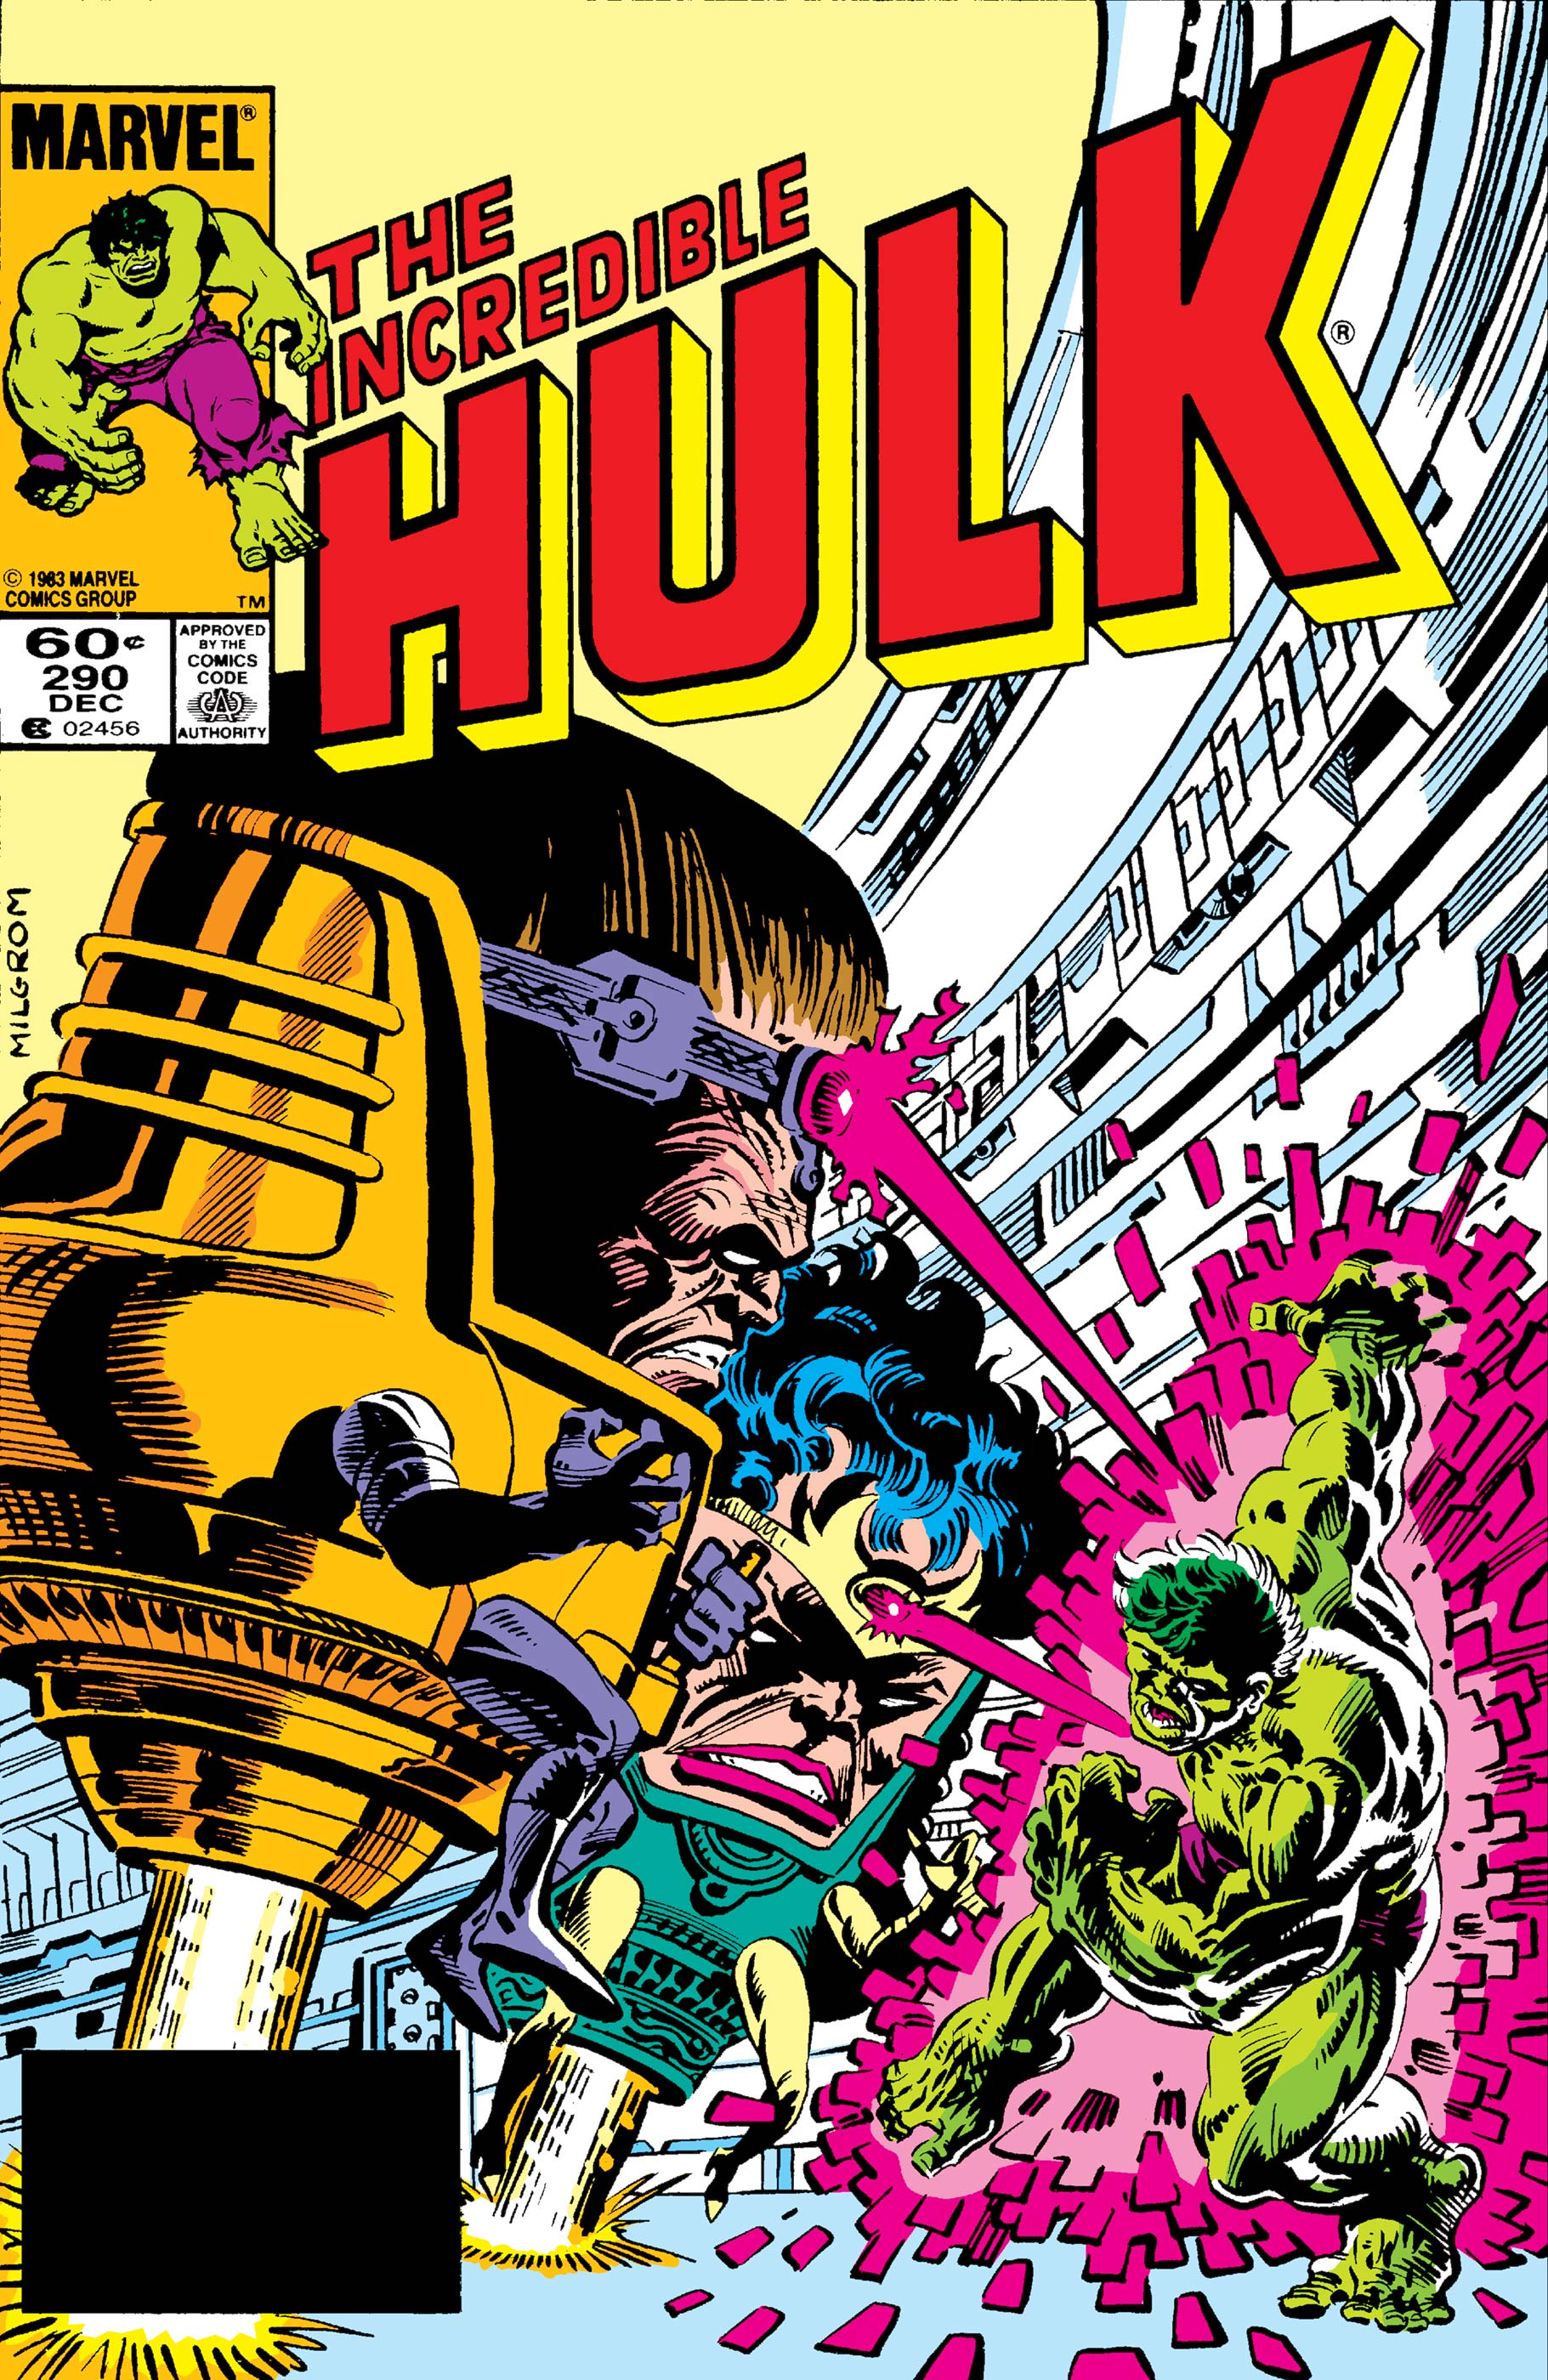 Incredible Hulk (1962) #290